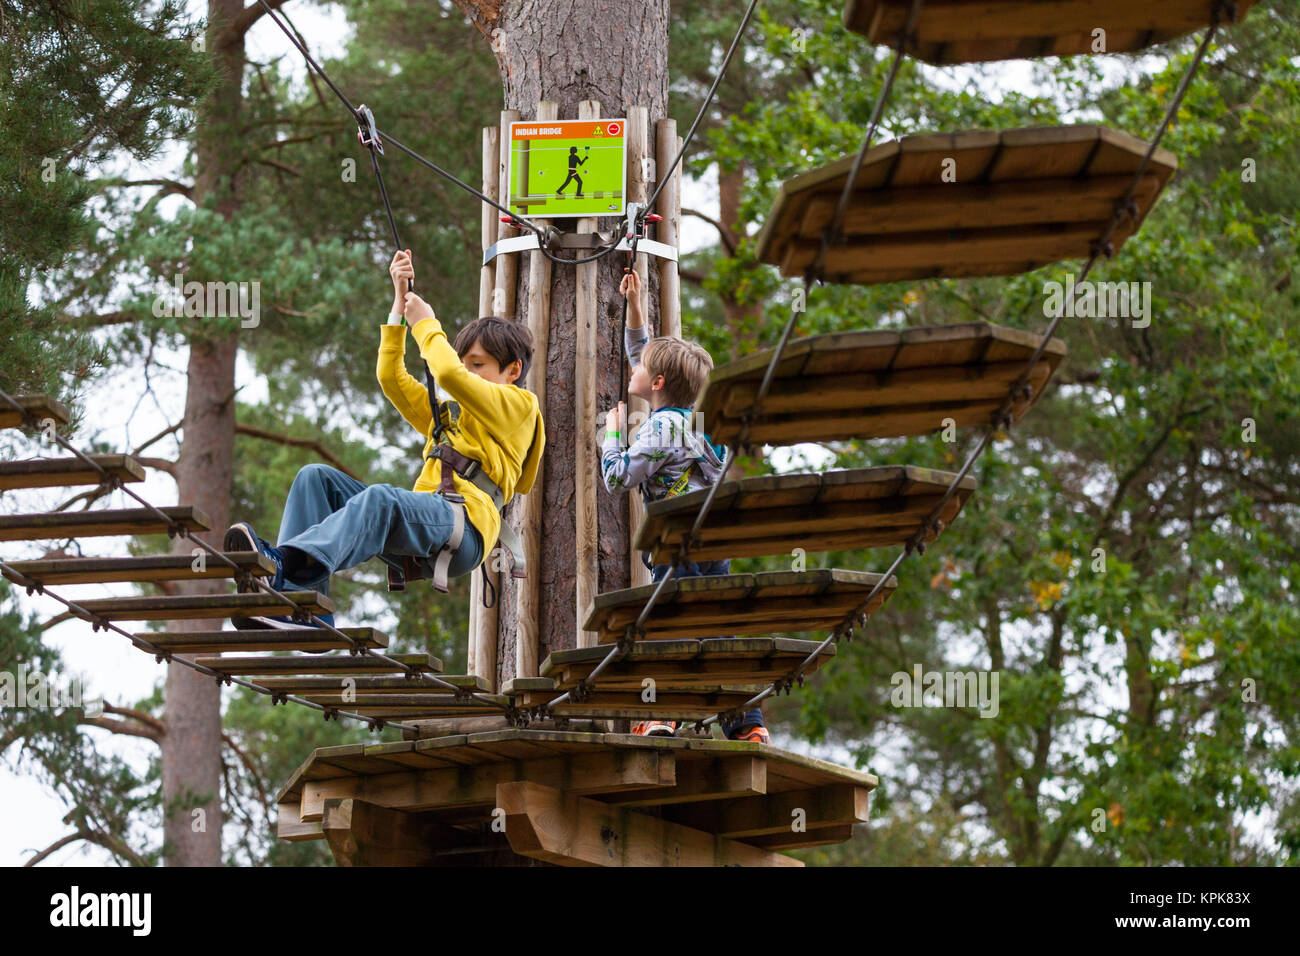 Two boys rope and bridge climbing at the Bedgebury National Pinetum at Bedgebury, Kent - Stock Image